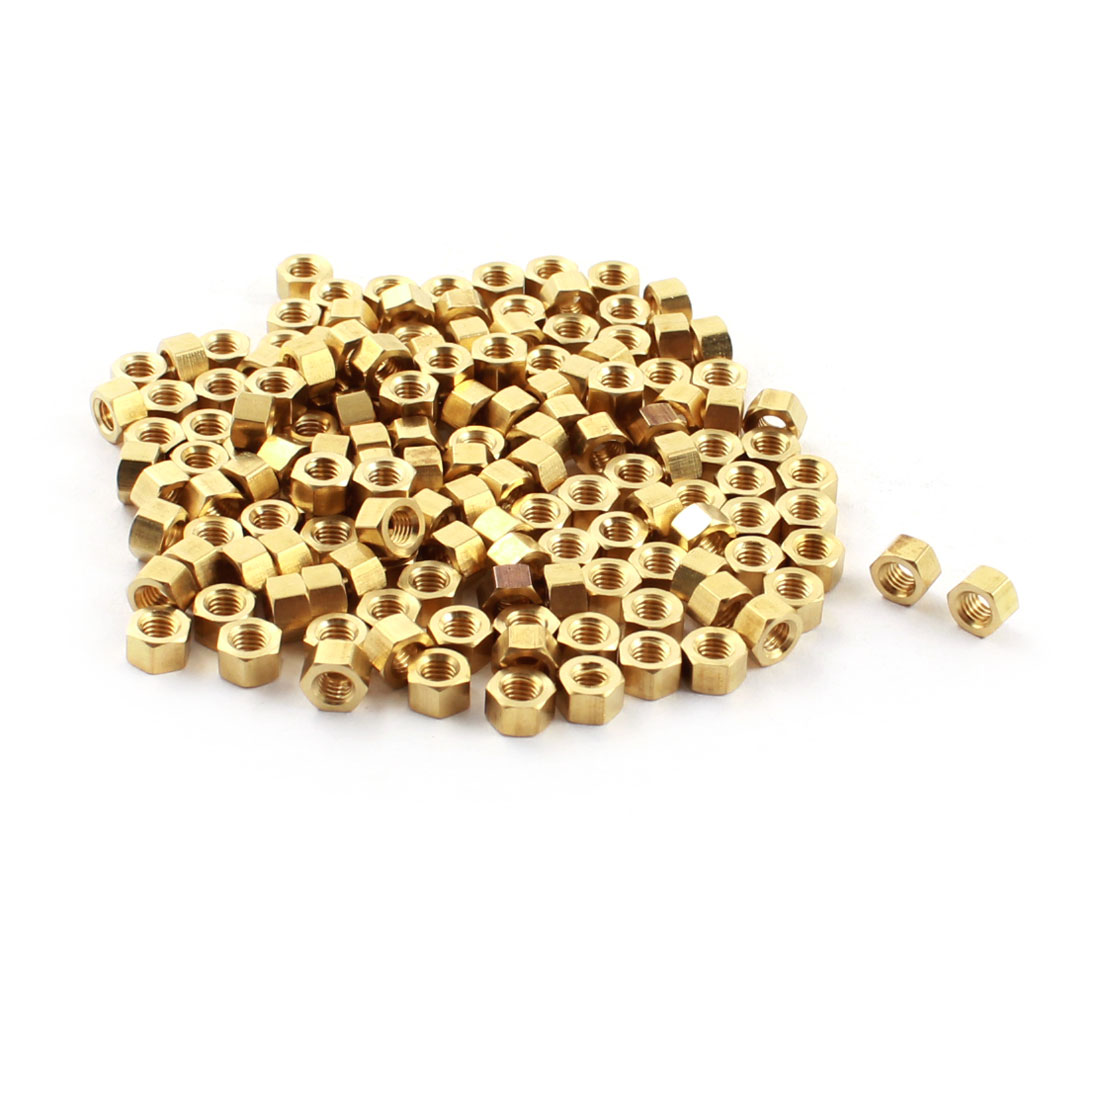 150 Pcs M3 x 3mm Female Thread Dual Ends Gold Tone Brass Pillar PCB Standoff Hexagonal Nut Spacer